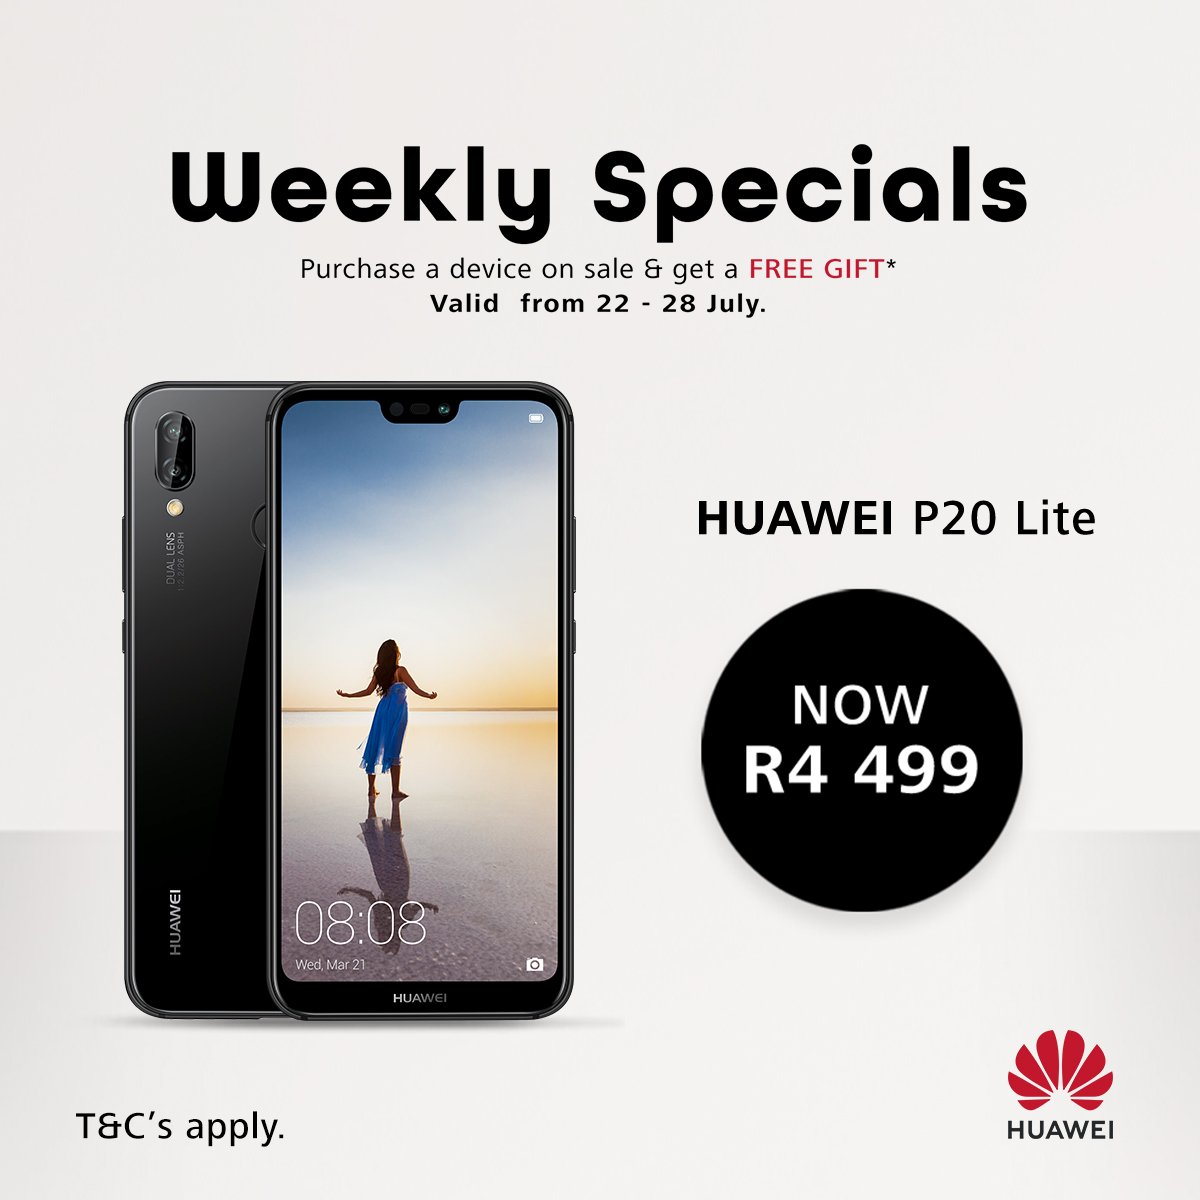 Unlock your inner superstar when you purchase the #HuaweiP20Lite for